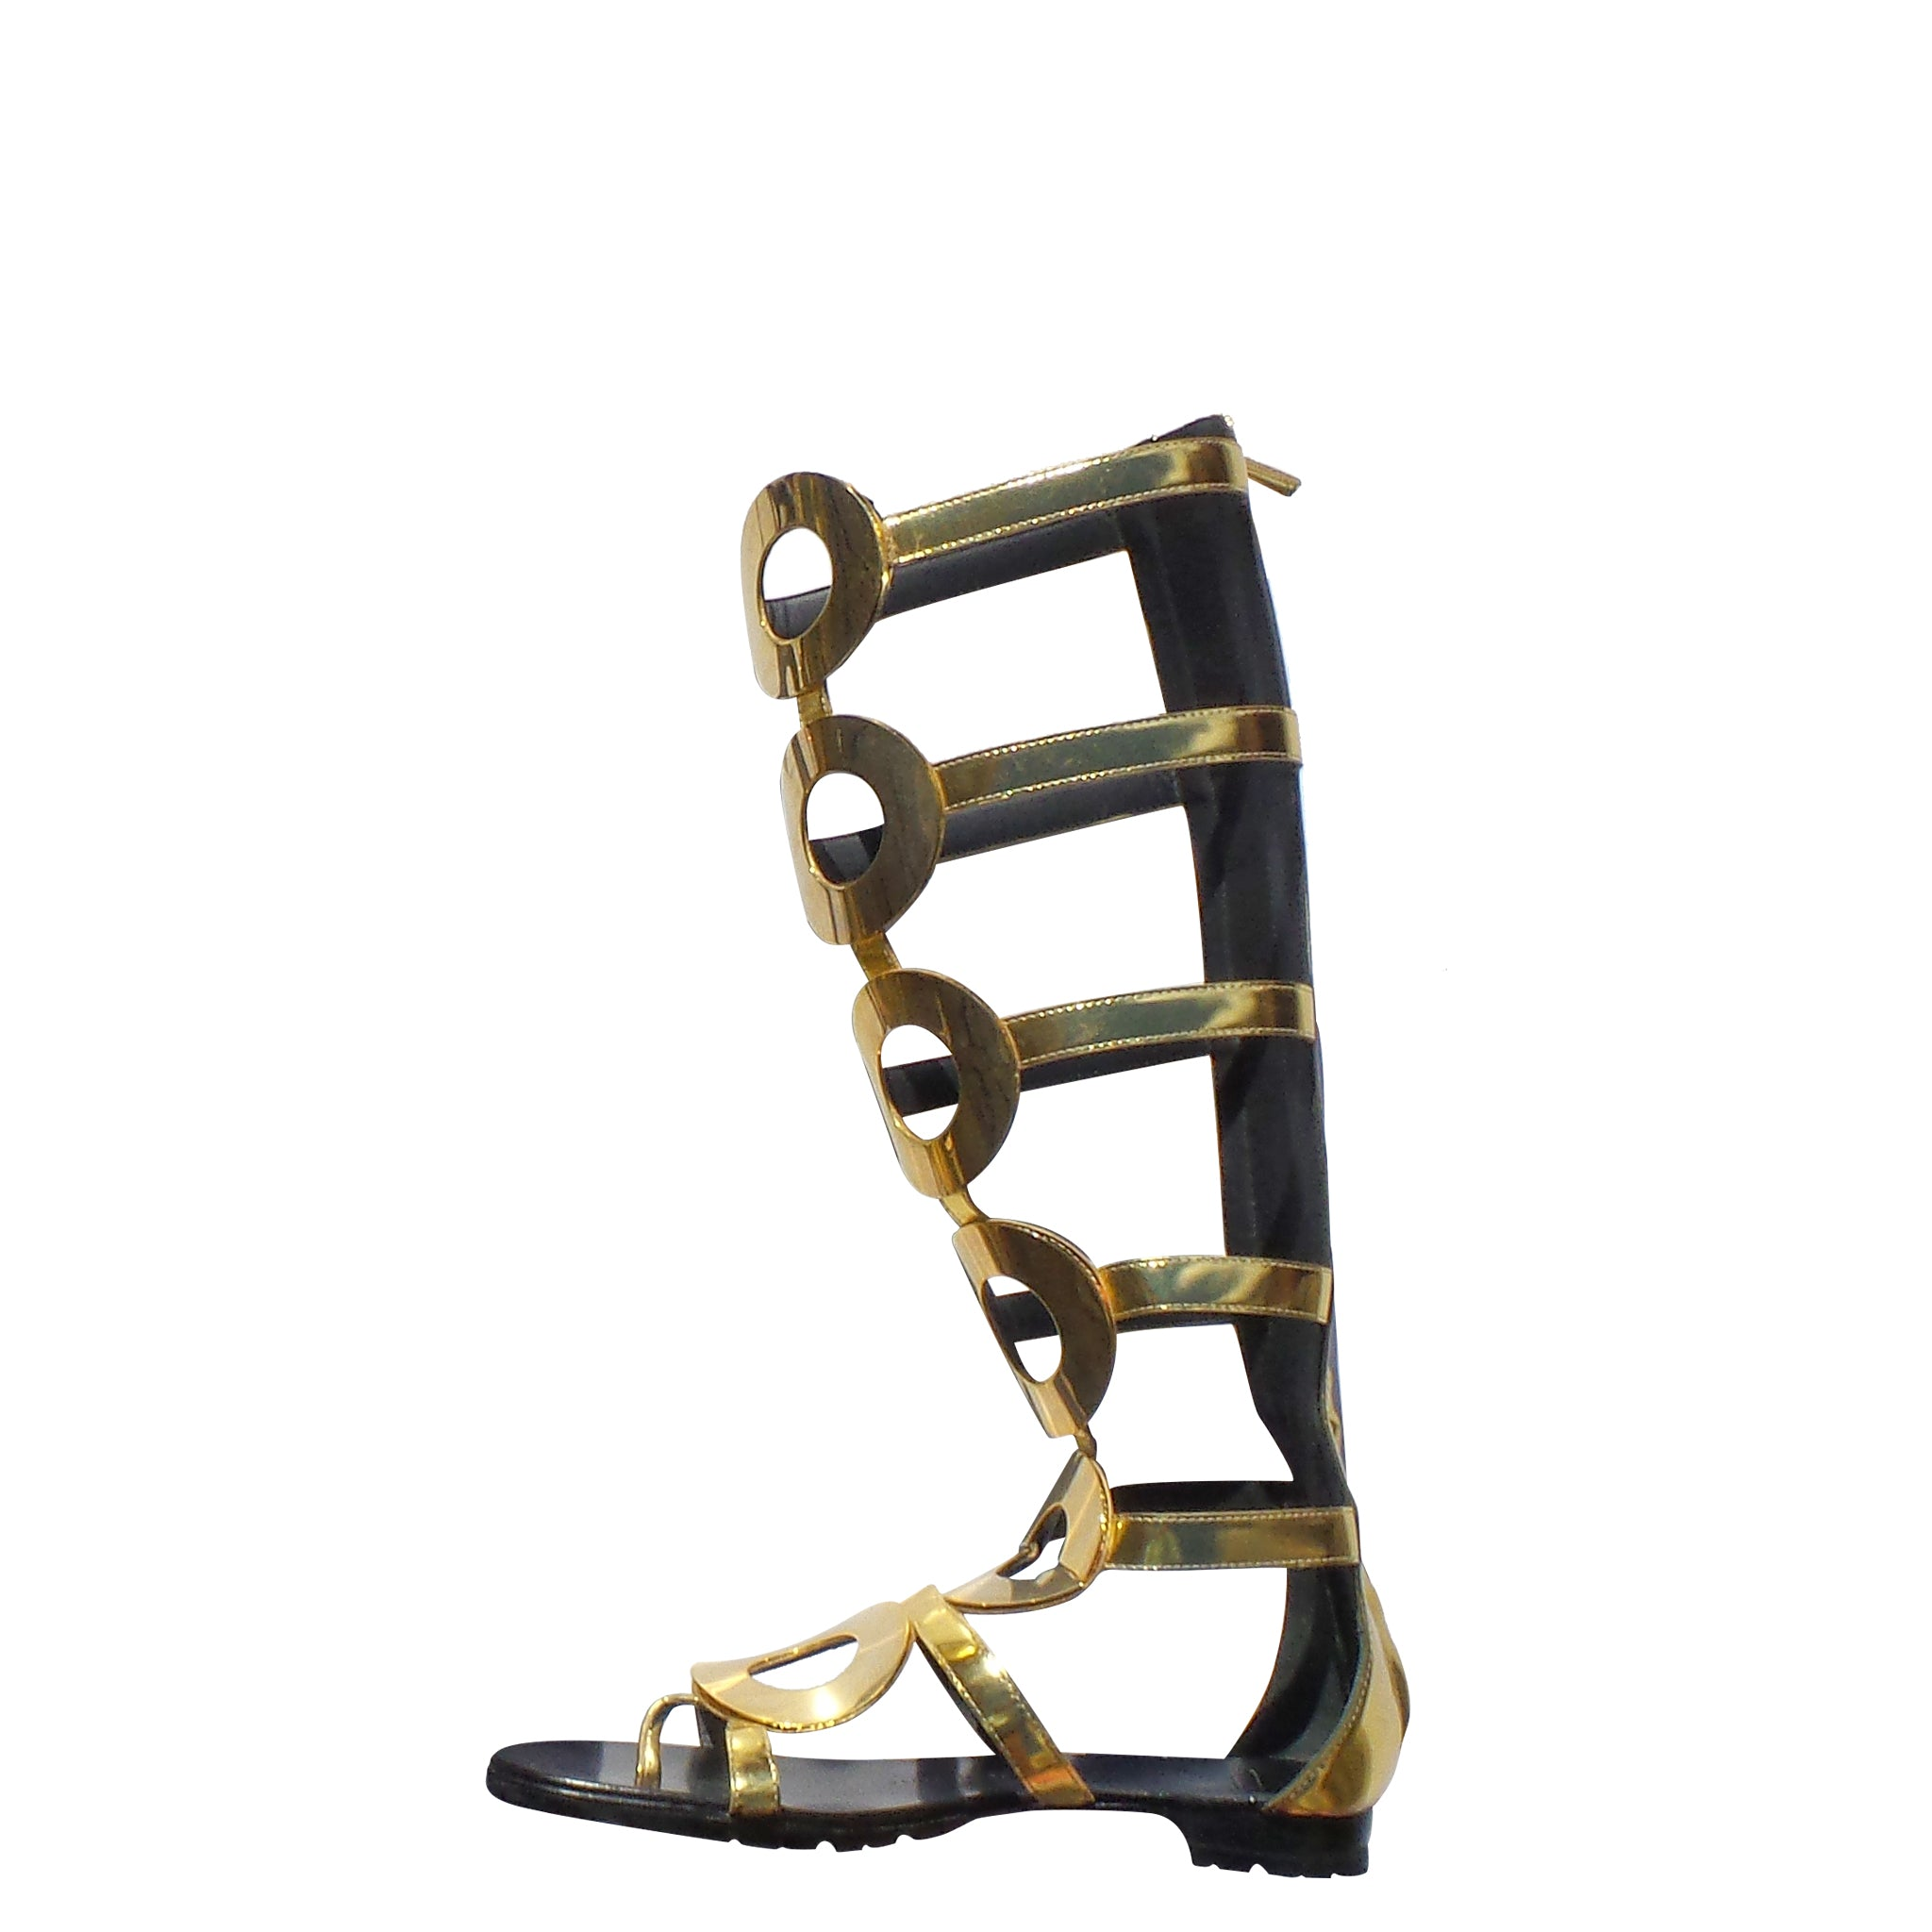 097cd65ea090  Sold  GIUSEPPE ZANOTTI Rylee Metallic Gold Leather Gladiator Knee Hig –  Encore Resale.com